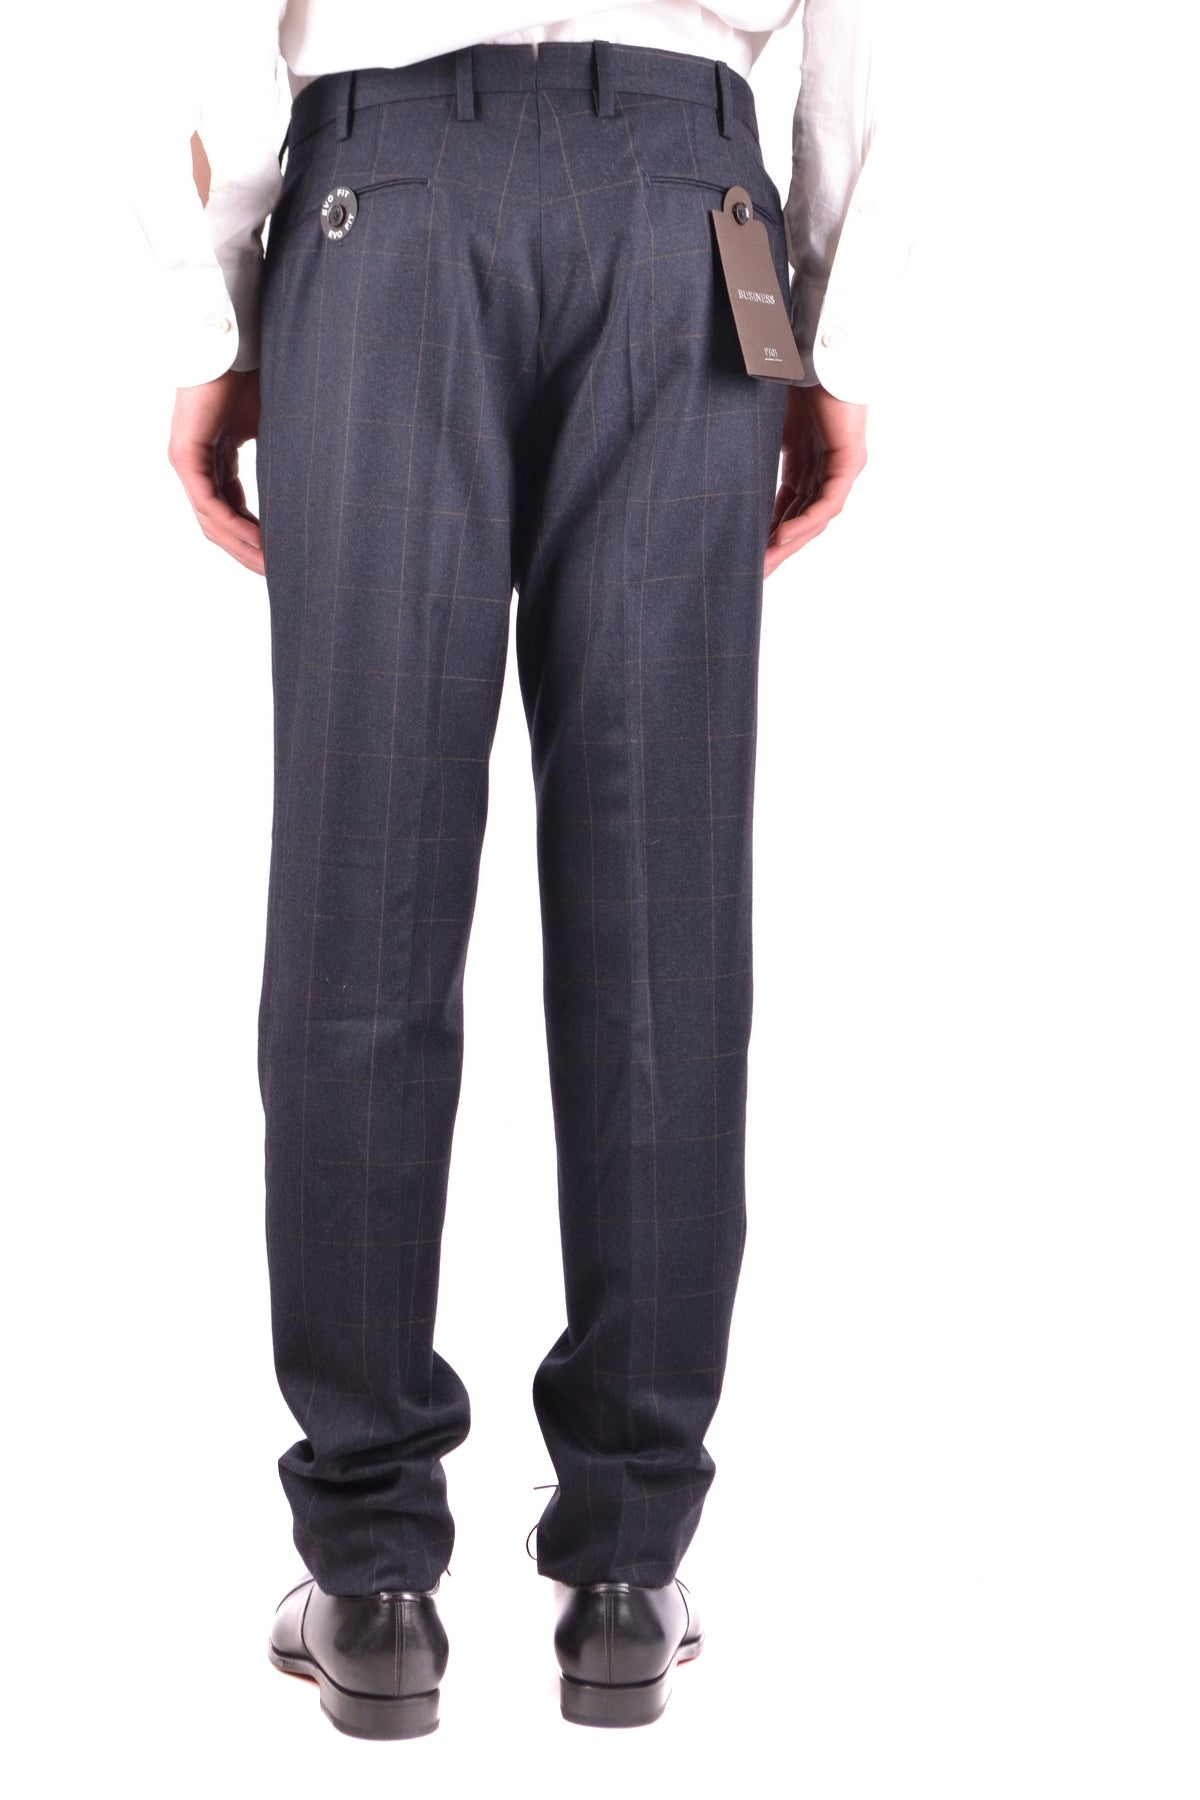 Trousers Pt01/Pt05-Trousers - MAN-Product Details Terms: New With LabelYear: 2017Main Color: MarrónGender: ManMade In: ItalySize: ItSeason: Fall / WinterClothing Type: TrousersComposition: Wool 100%-Keyomi-Sook